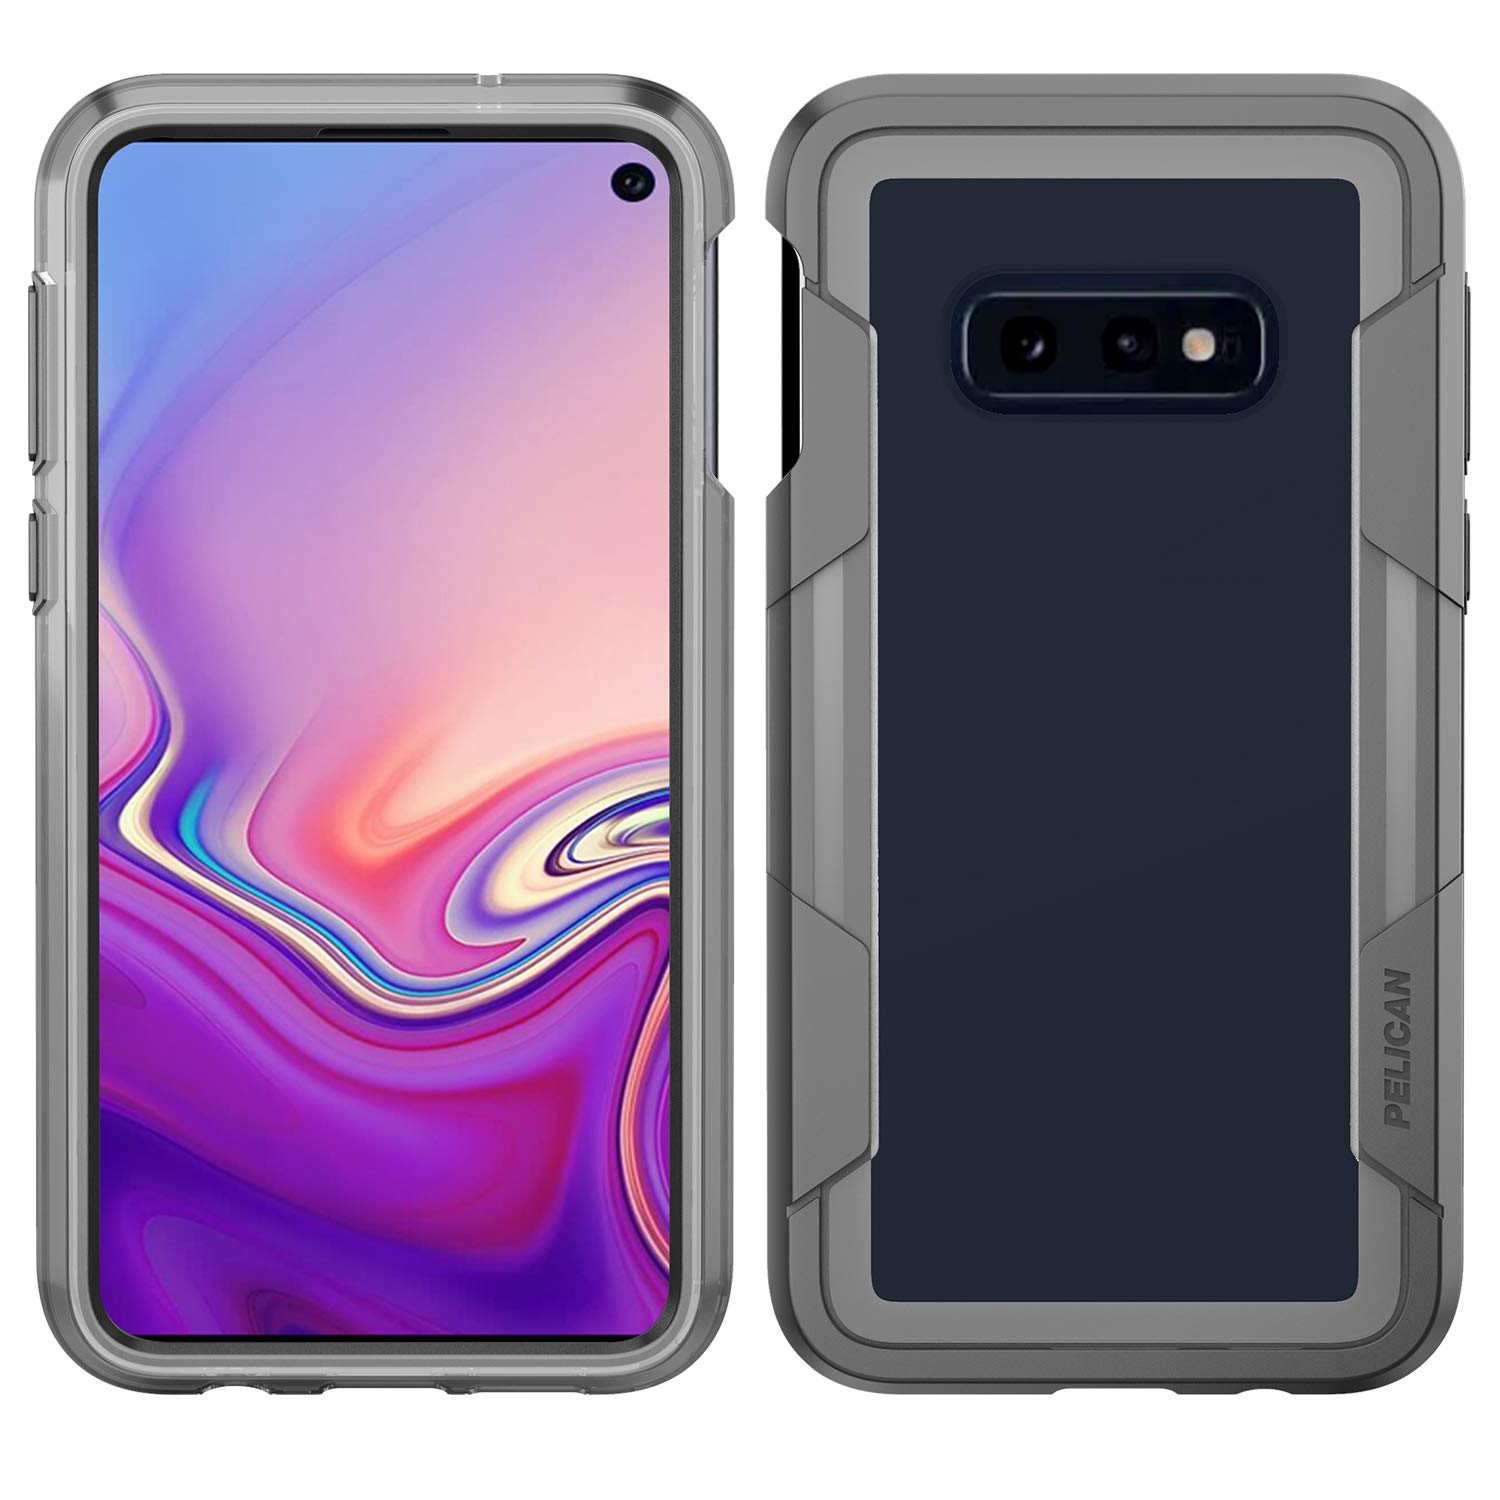 Amazon.com: Pelican Samsung Galaxy S10e Case - Voyager ...